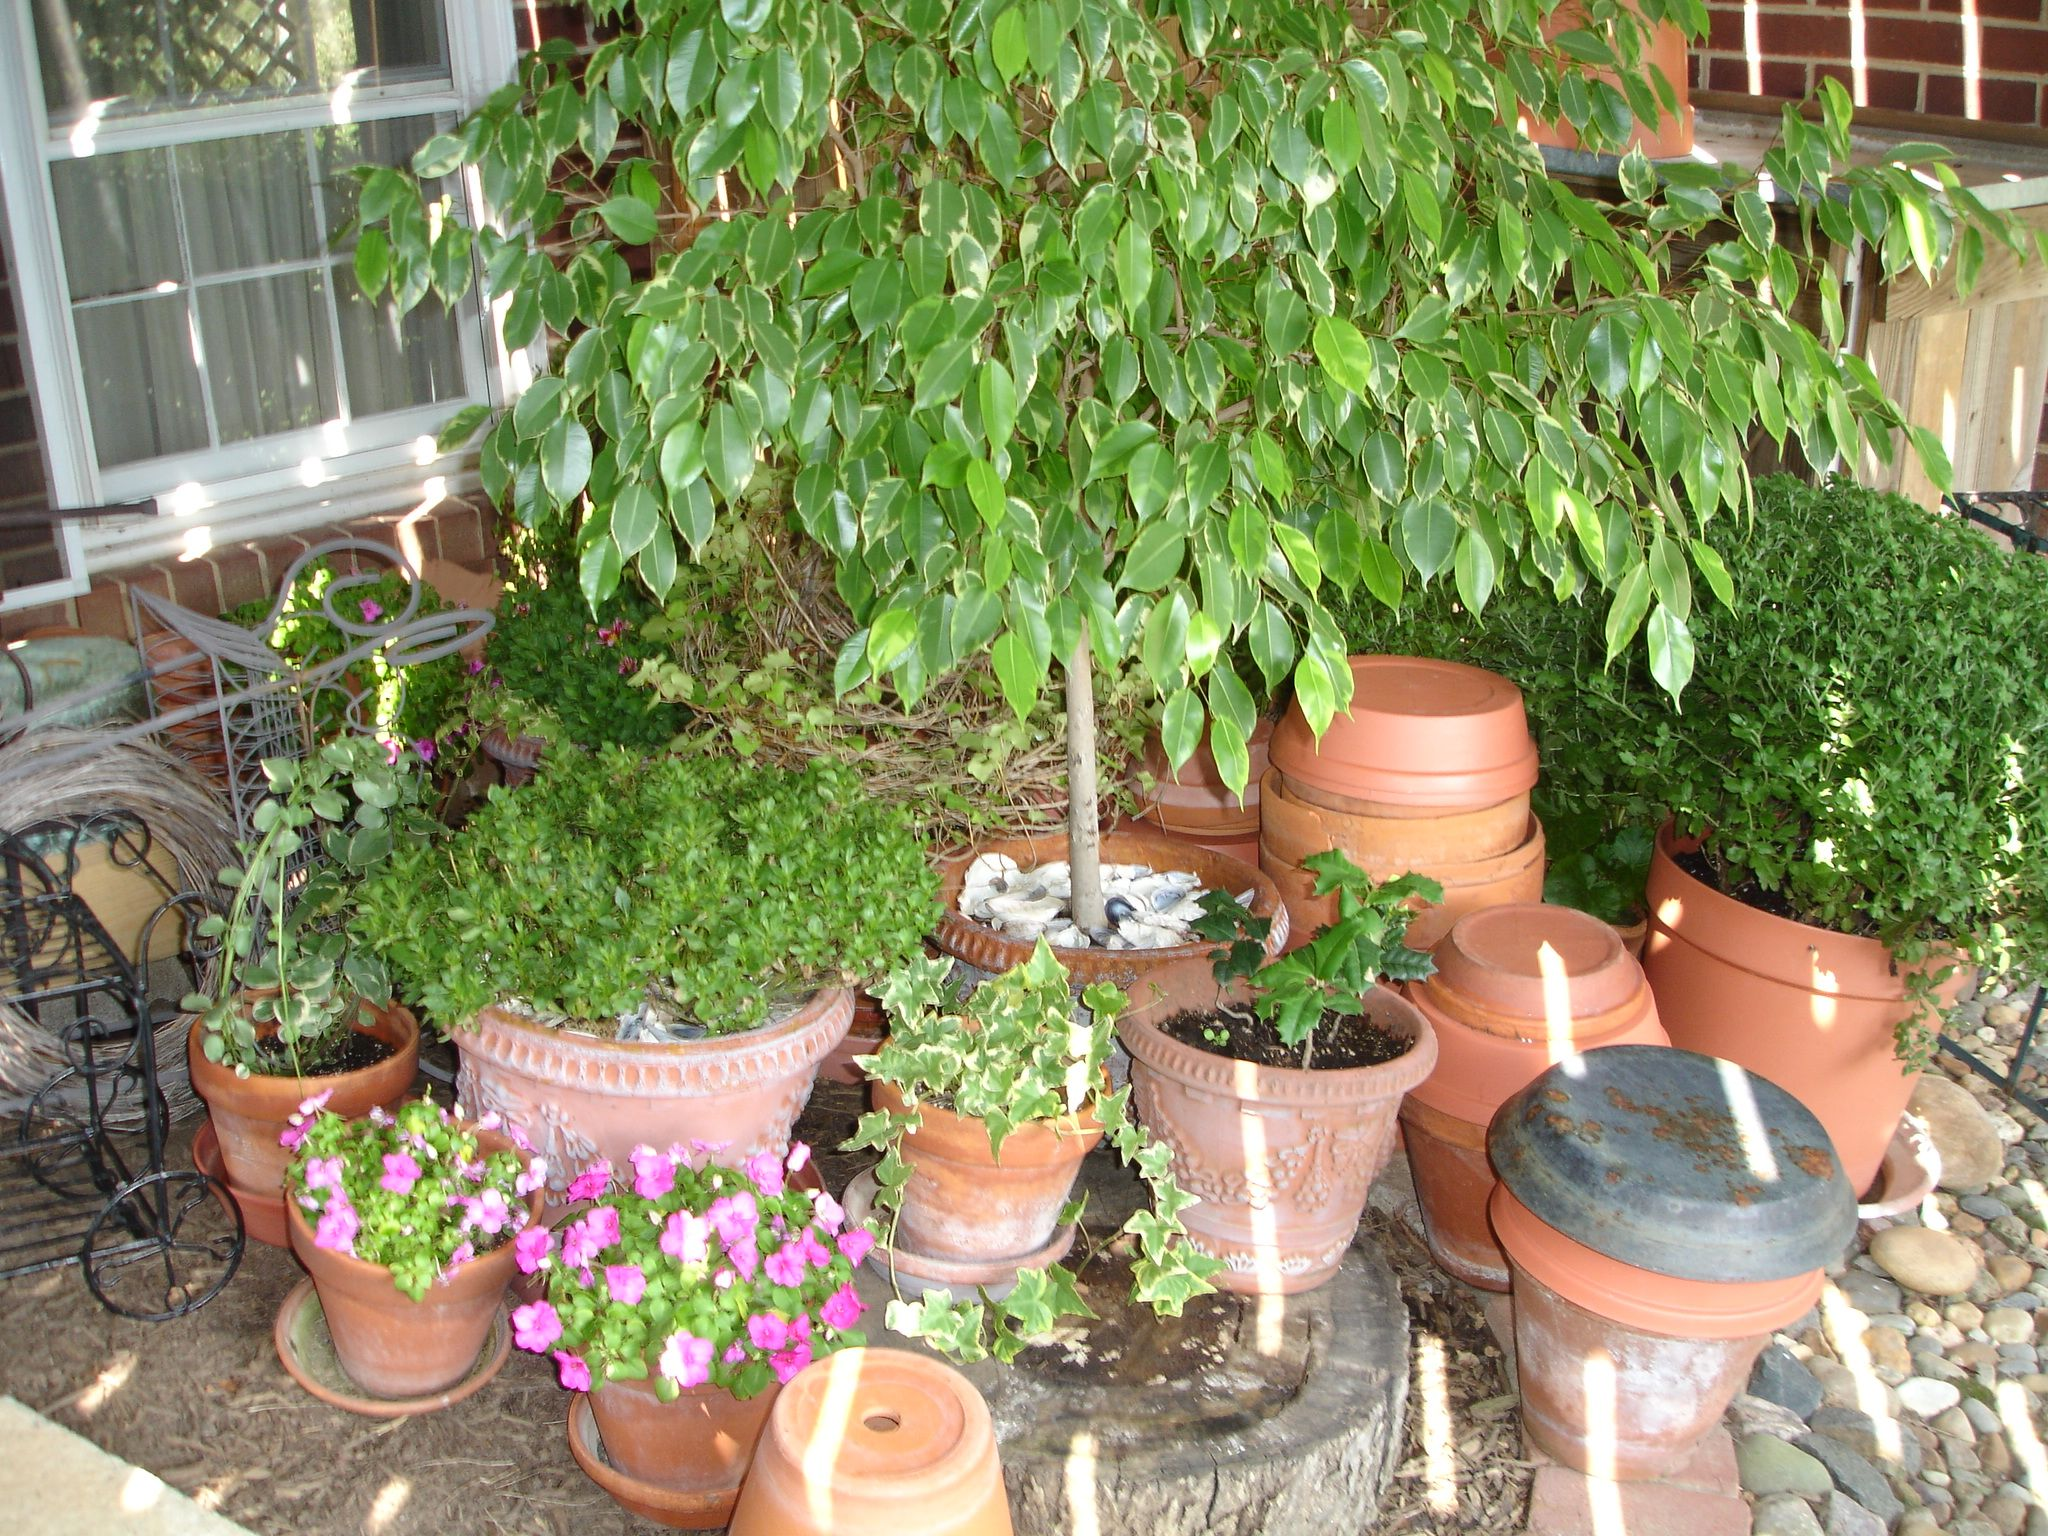 Lisa earthgirl gardening tips and helpful advice for Landscaping with potted plants